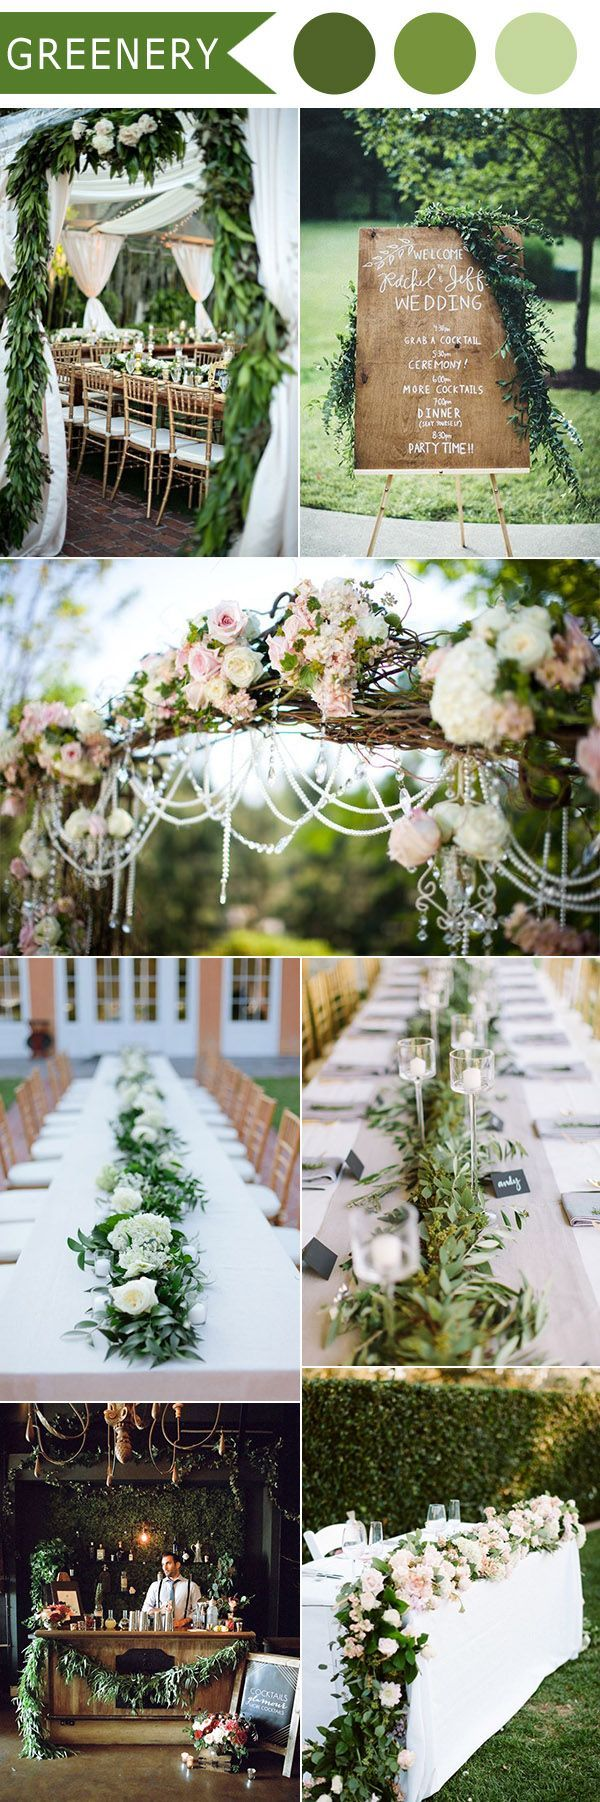 2016 trending greenery natural lush wedding ide